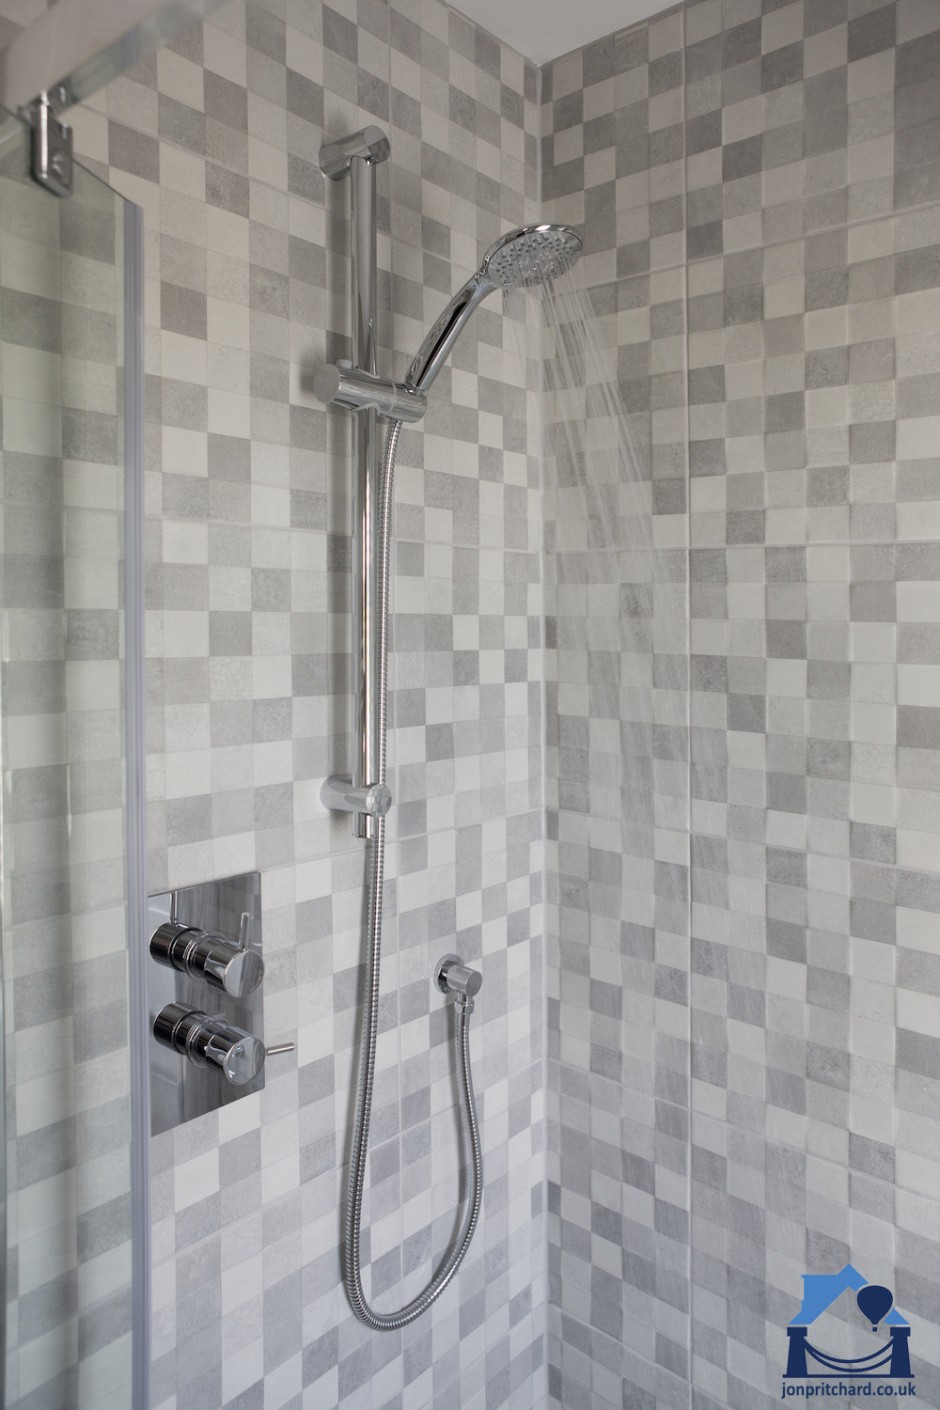 Portriat orientation photo of a modern tiled shower enclosure in attractive grey 'large' mosaic matt tiles. The water is running, shower is facing right.